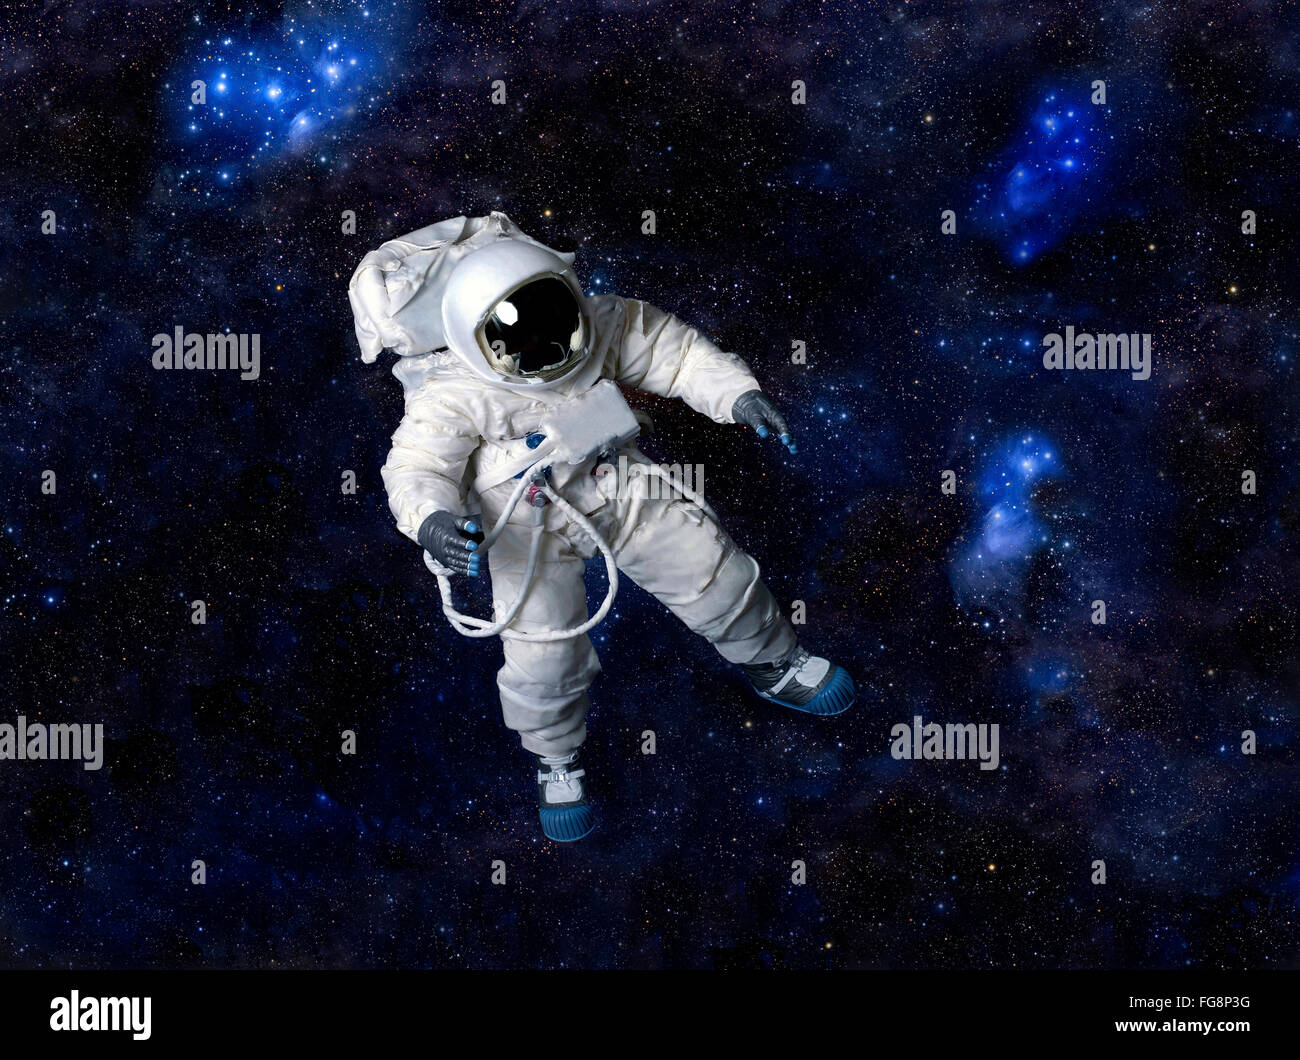 Astronaut floating in deep space - Stock Image